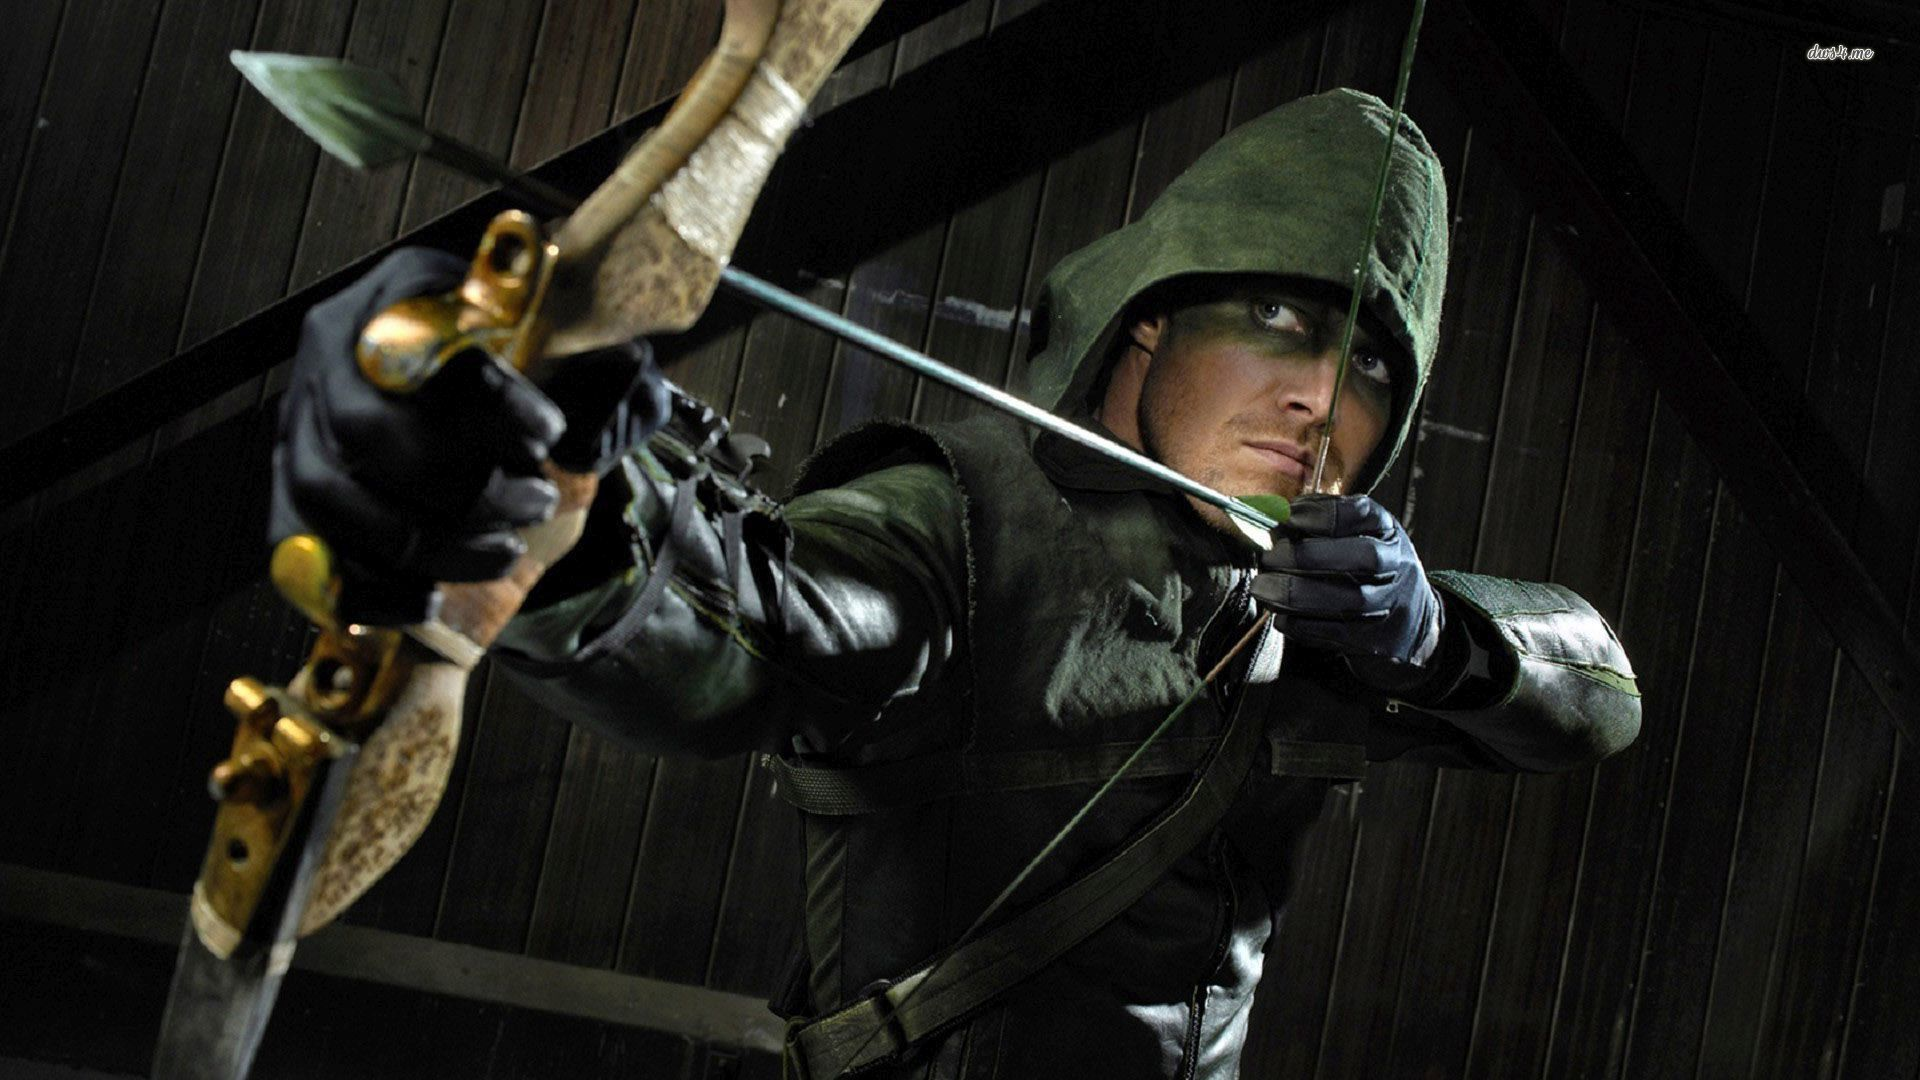 Stephen amell says green arrow will be f mean next season stephen amell says green arrow will be f mean next season voltagebd Gallery